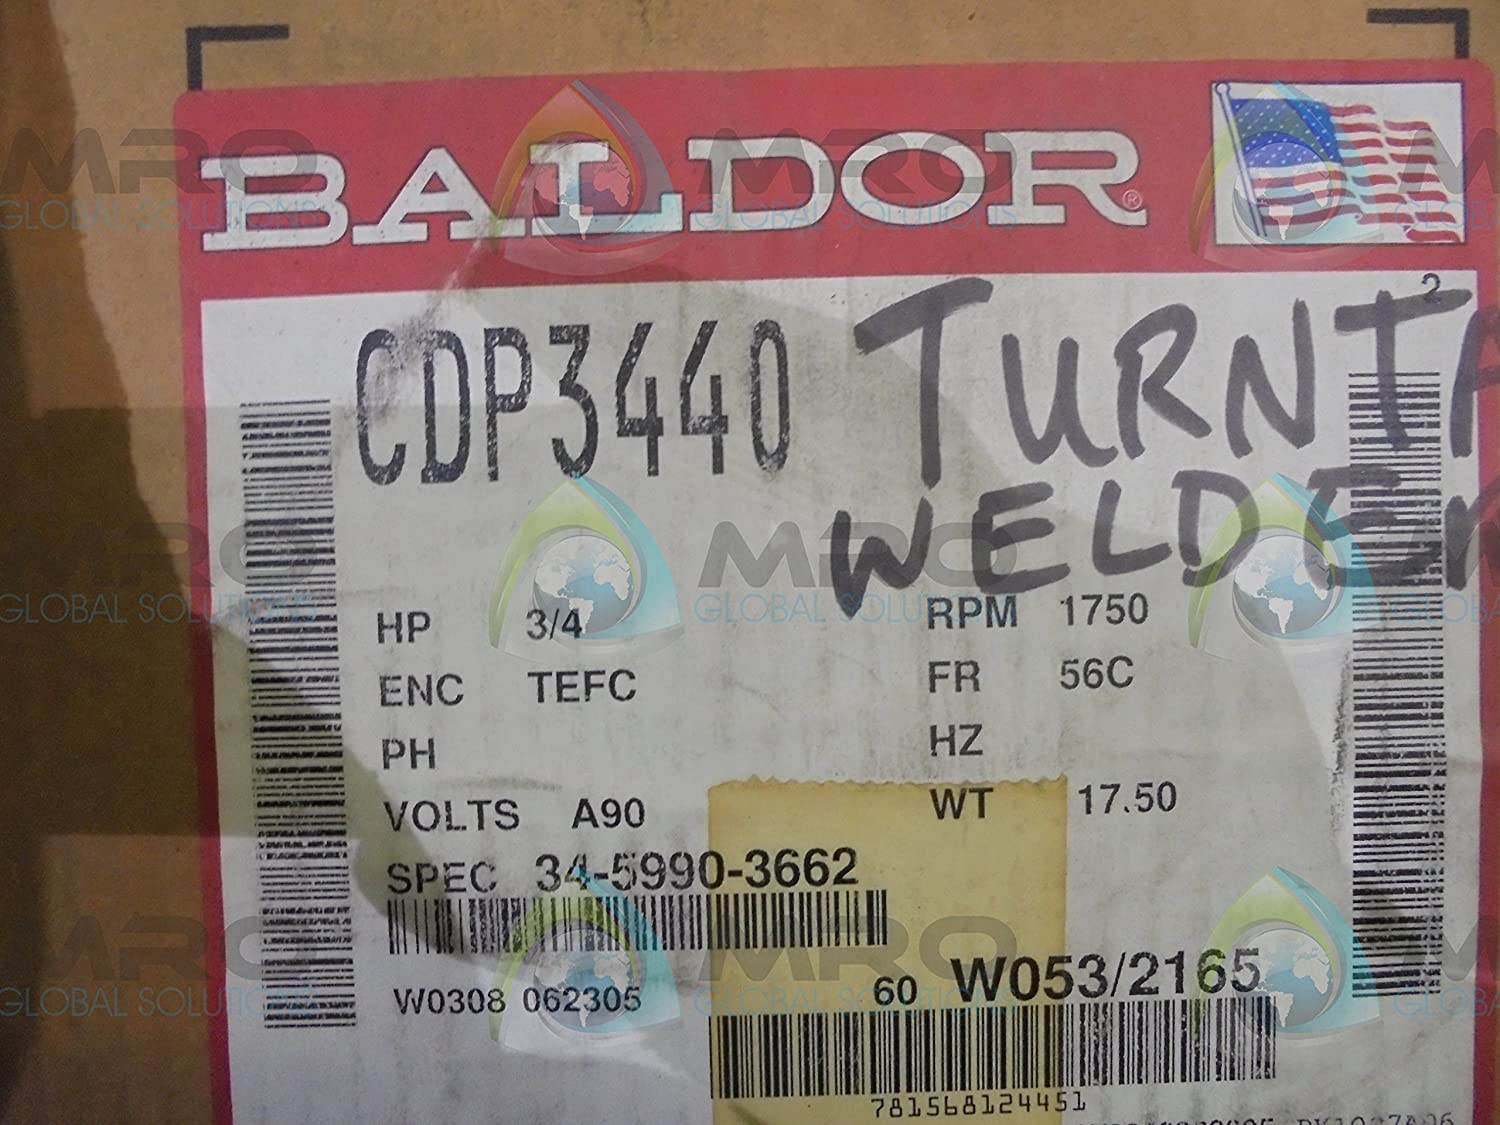 Baldor Cdp3440 56c Frame Tefc Dc Motor 075 Hp 1750 Rpm 3428p F1 High Voltage And Low Wiring